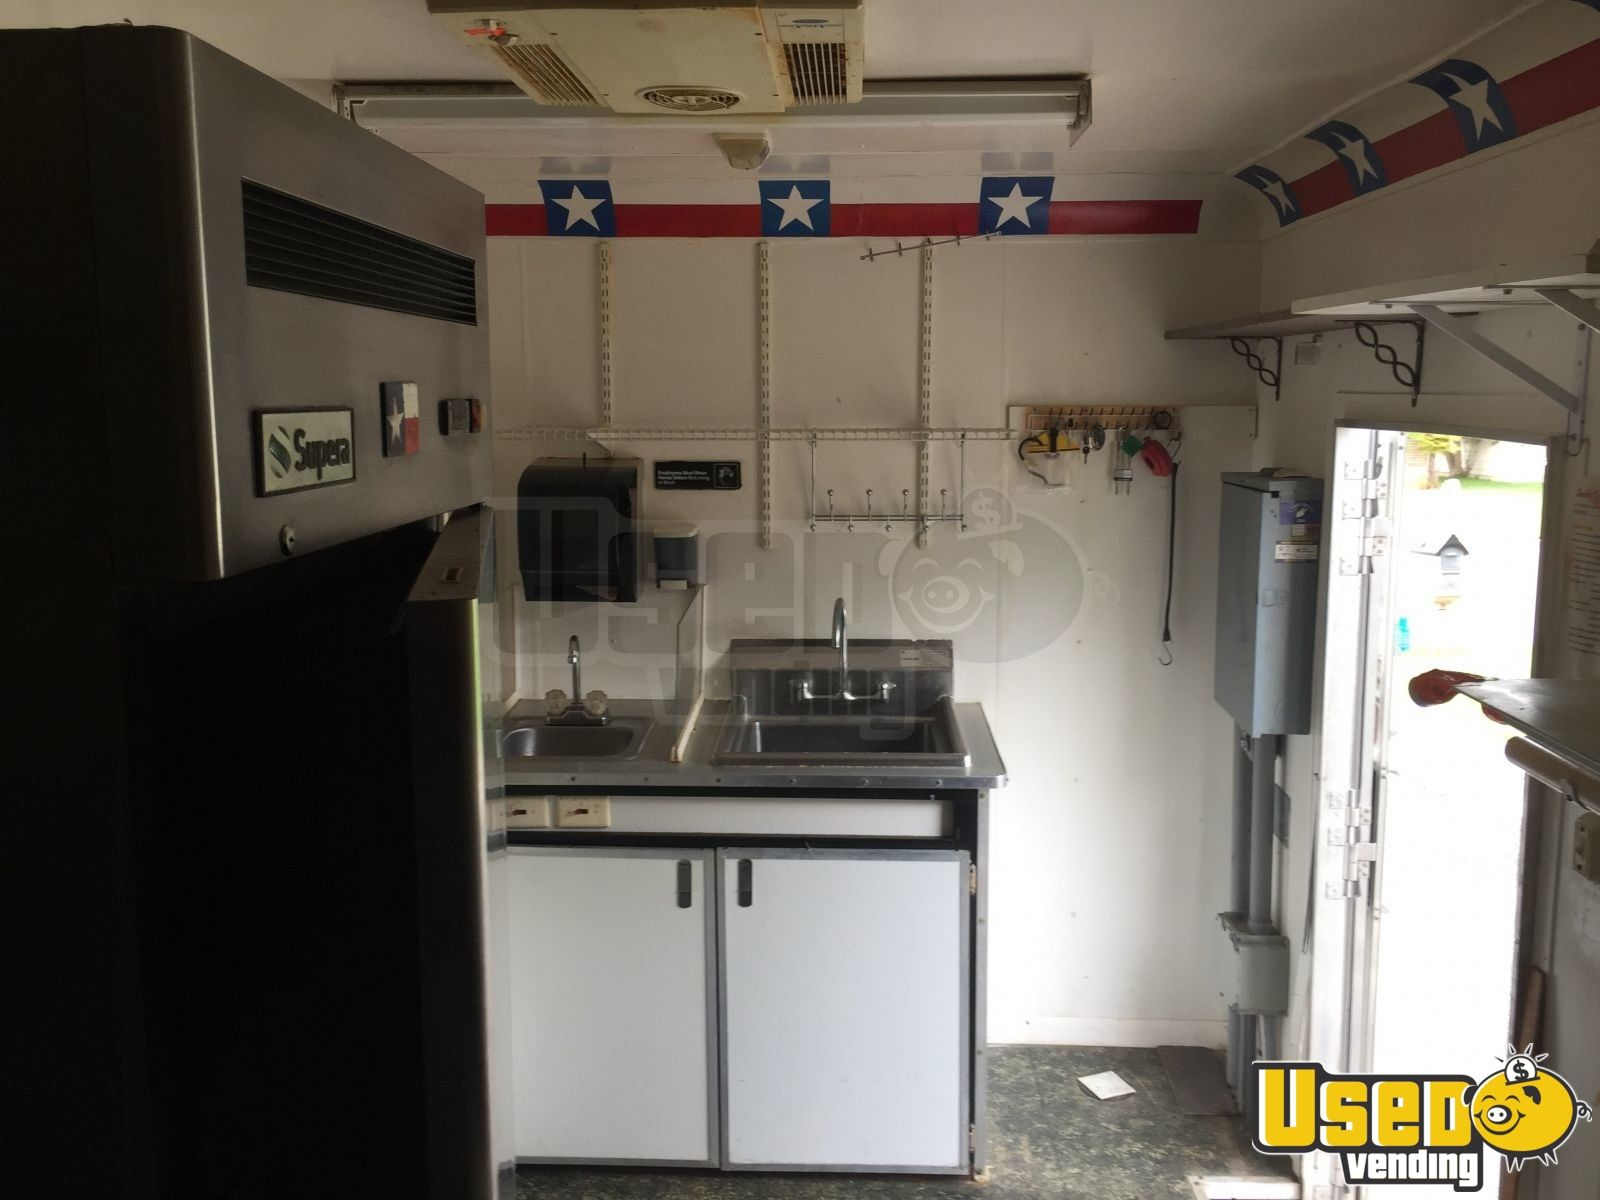 2008 Food Concession Trailer Kitchen Food Trailer Refrigerator Texas for Sale - 10